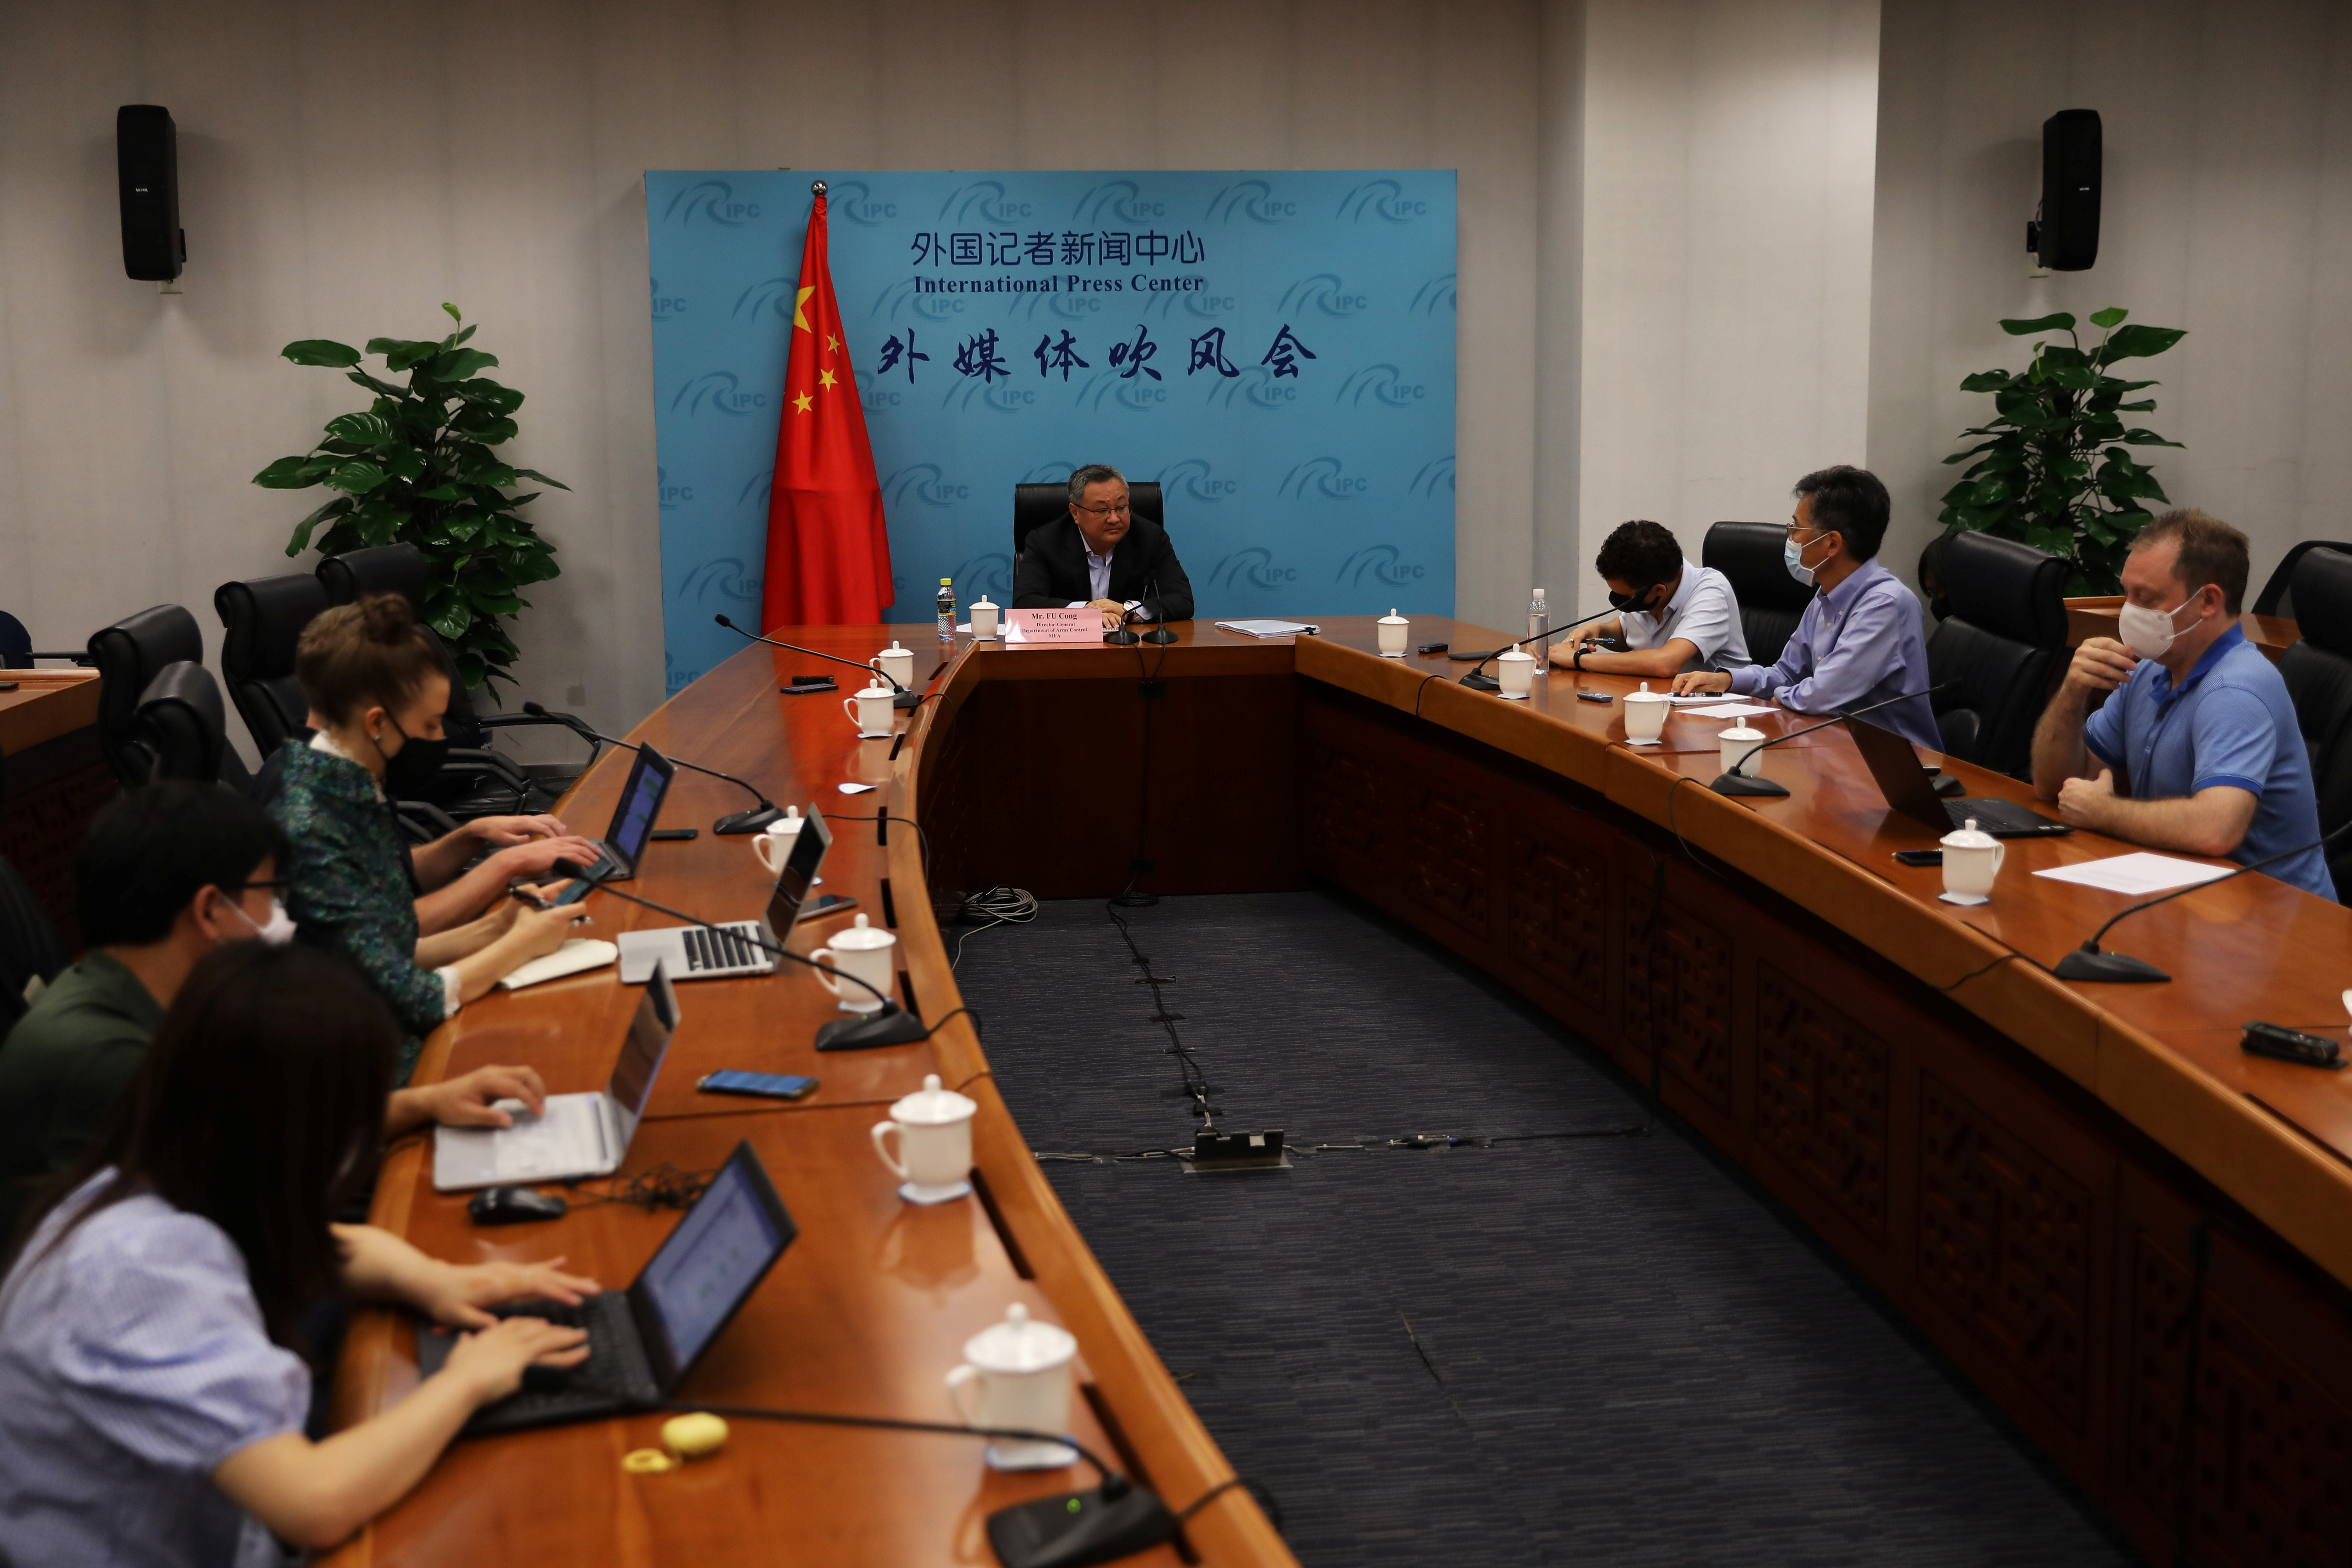 Fu Cong, the director-general of the arms control department of Chinese foreign ministry, speaks at a news conference on COVID-19 origin-tracking related issues, in Beijing, China August 25, 2021. REUTERS/Tingshu Wang